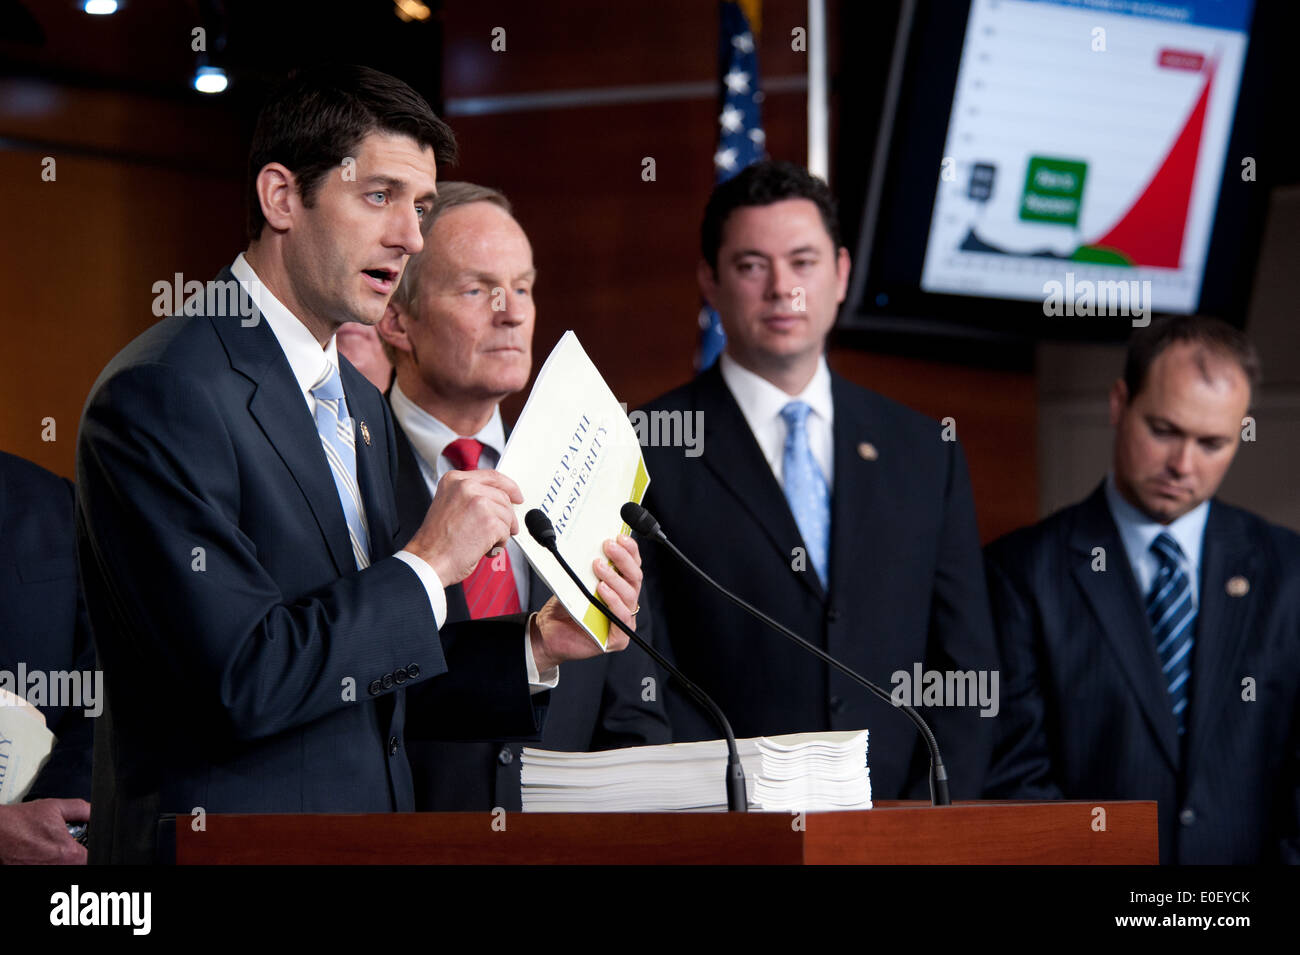 US House Budget Chairman Rep. Paul Ryan holds a press conference about the federal budget stalemate and his 'Path to Prosperity' proposal April 5, 2011 in Washington, DC. - Stock Image